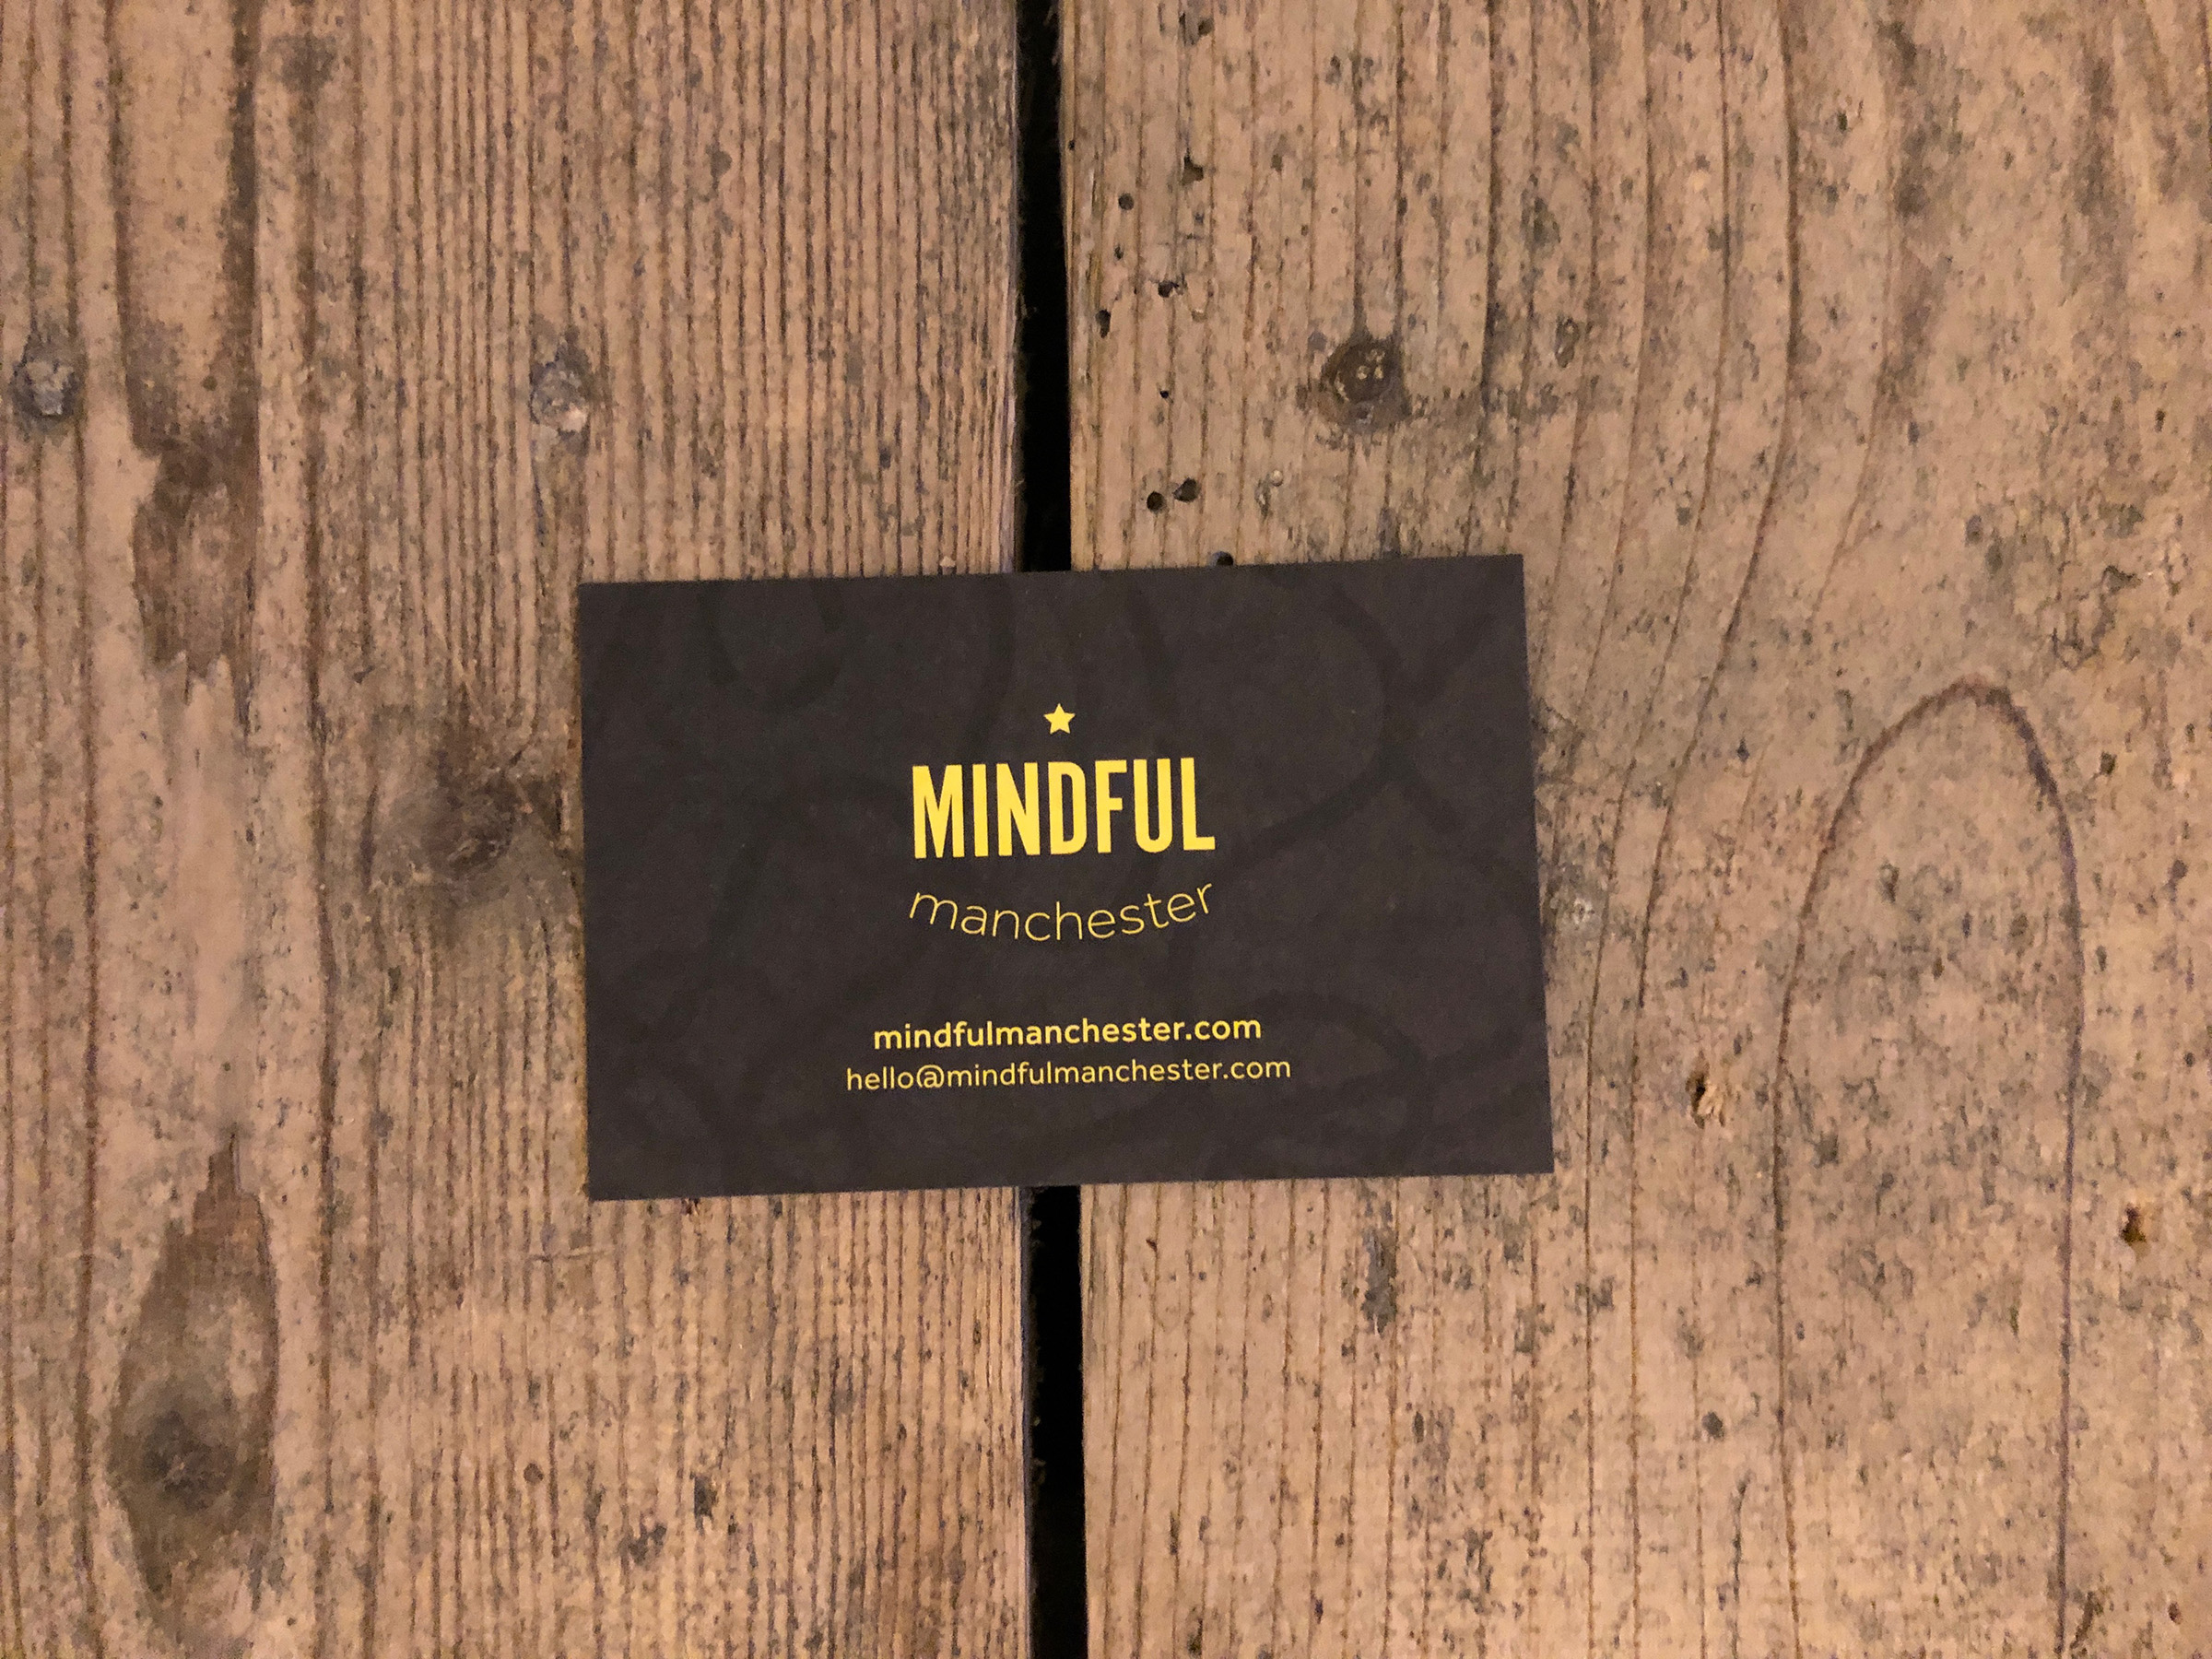 mindfulmanchester